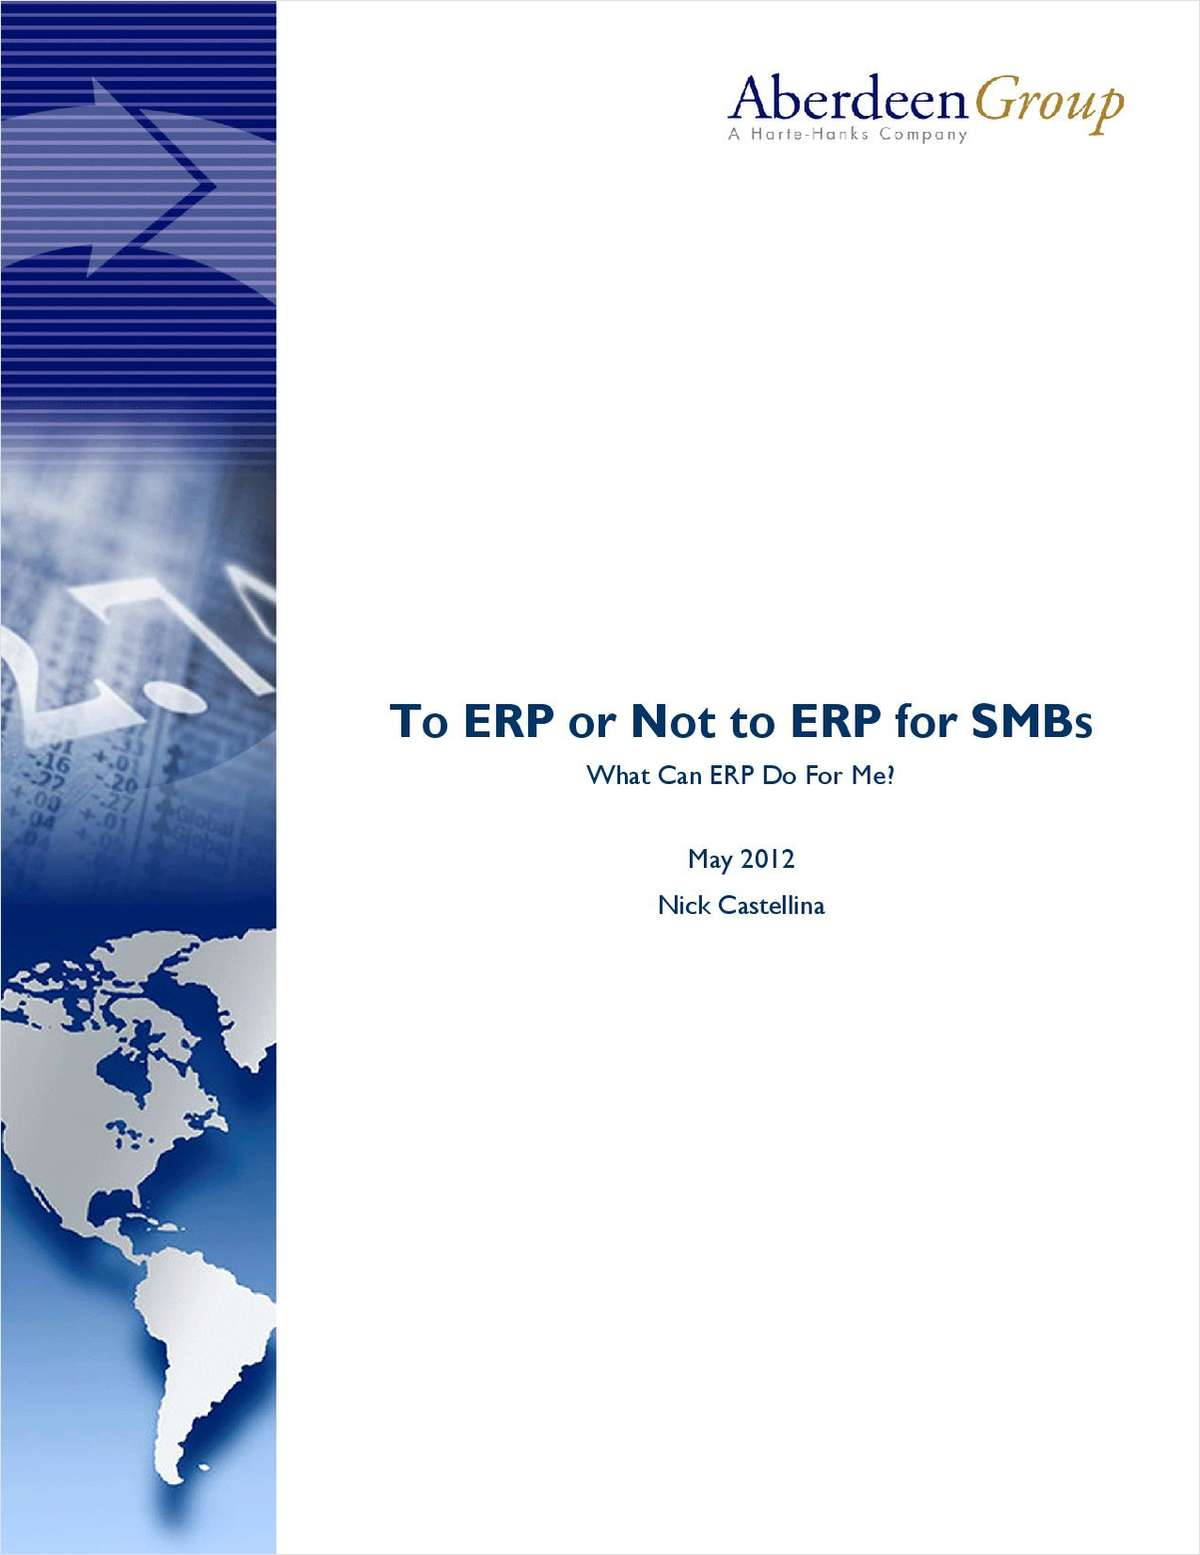 To ERP or Not to ERP for SMB's